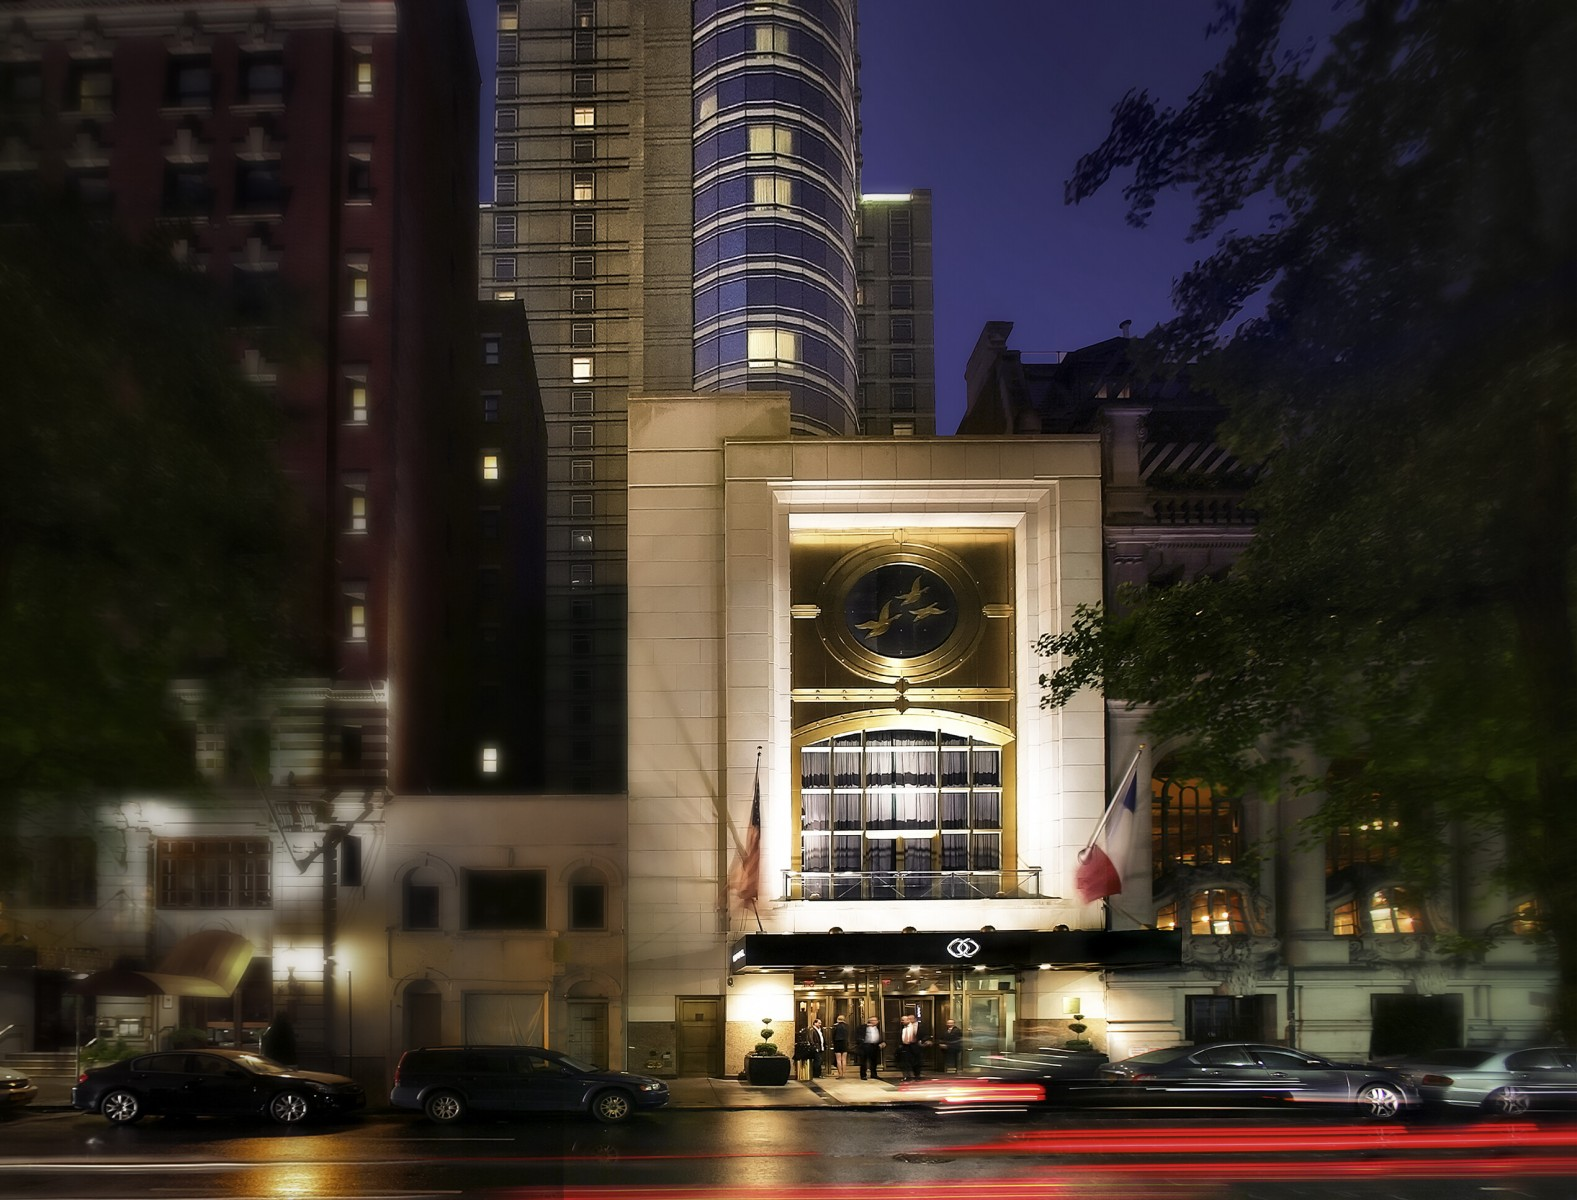 Sofitel New York review, Sofitel hotel New York, Sofitel hotel New York review, Sofitel New York guide